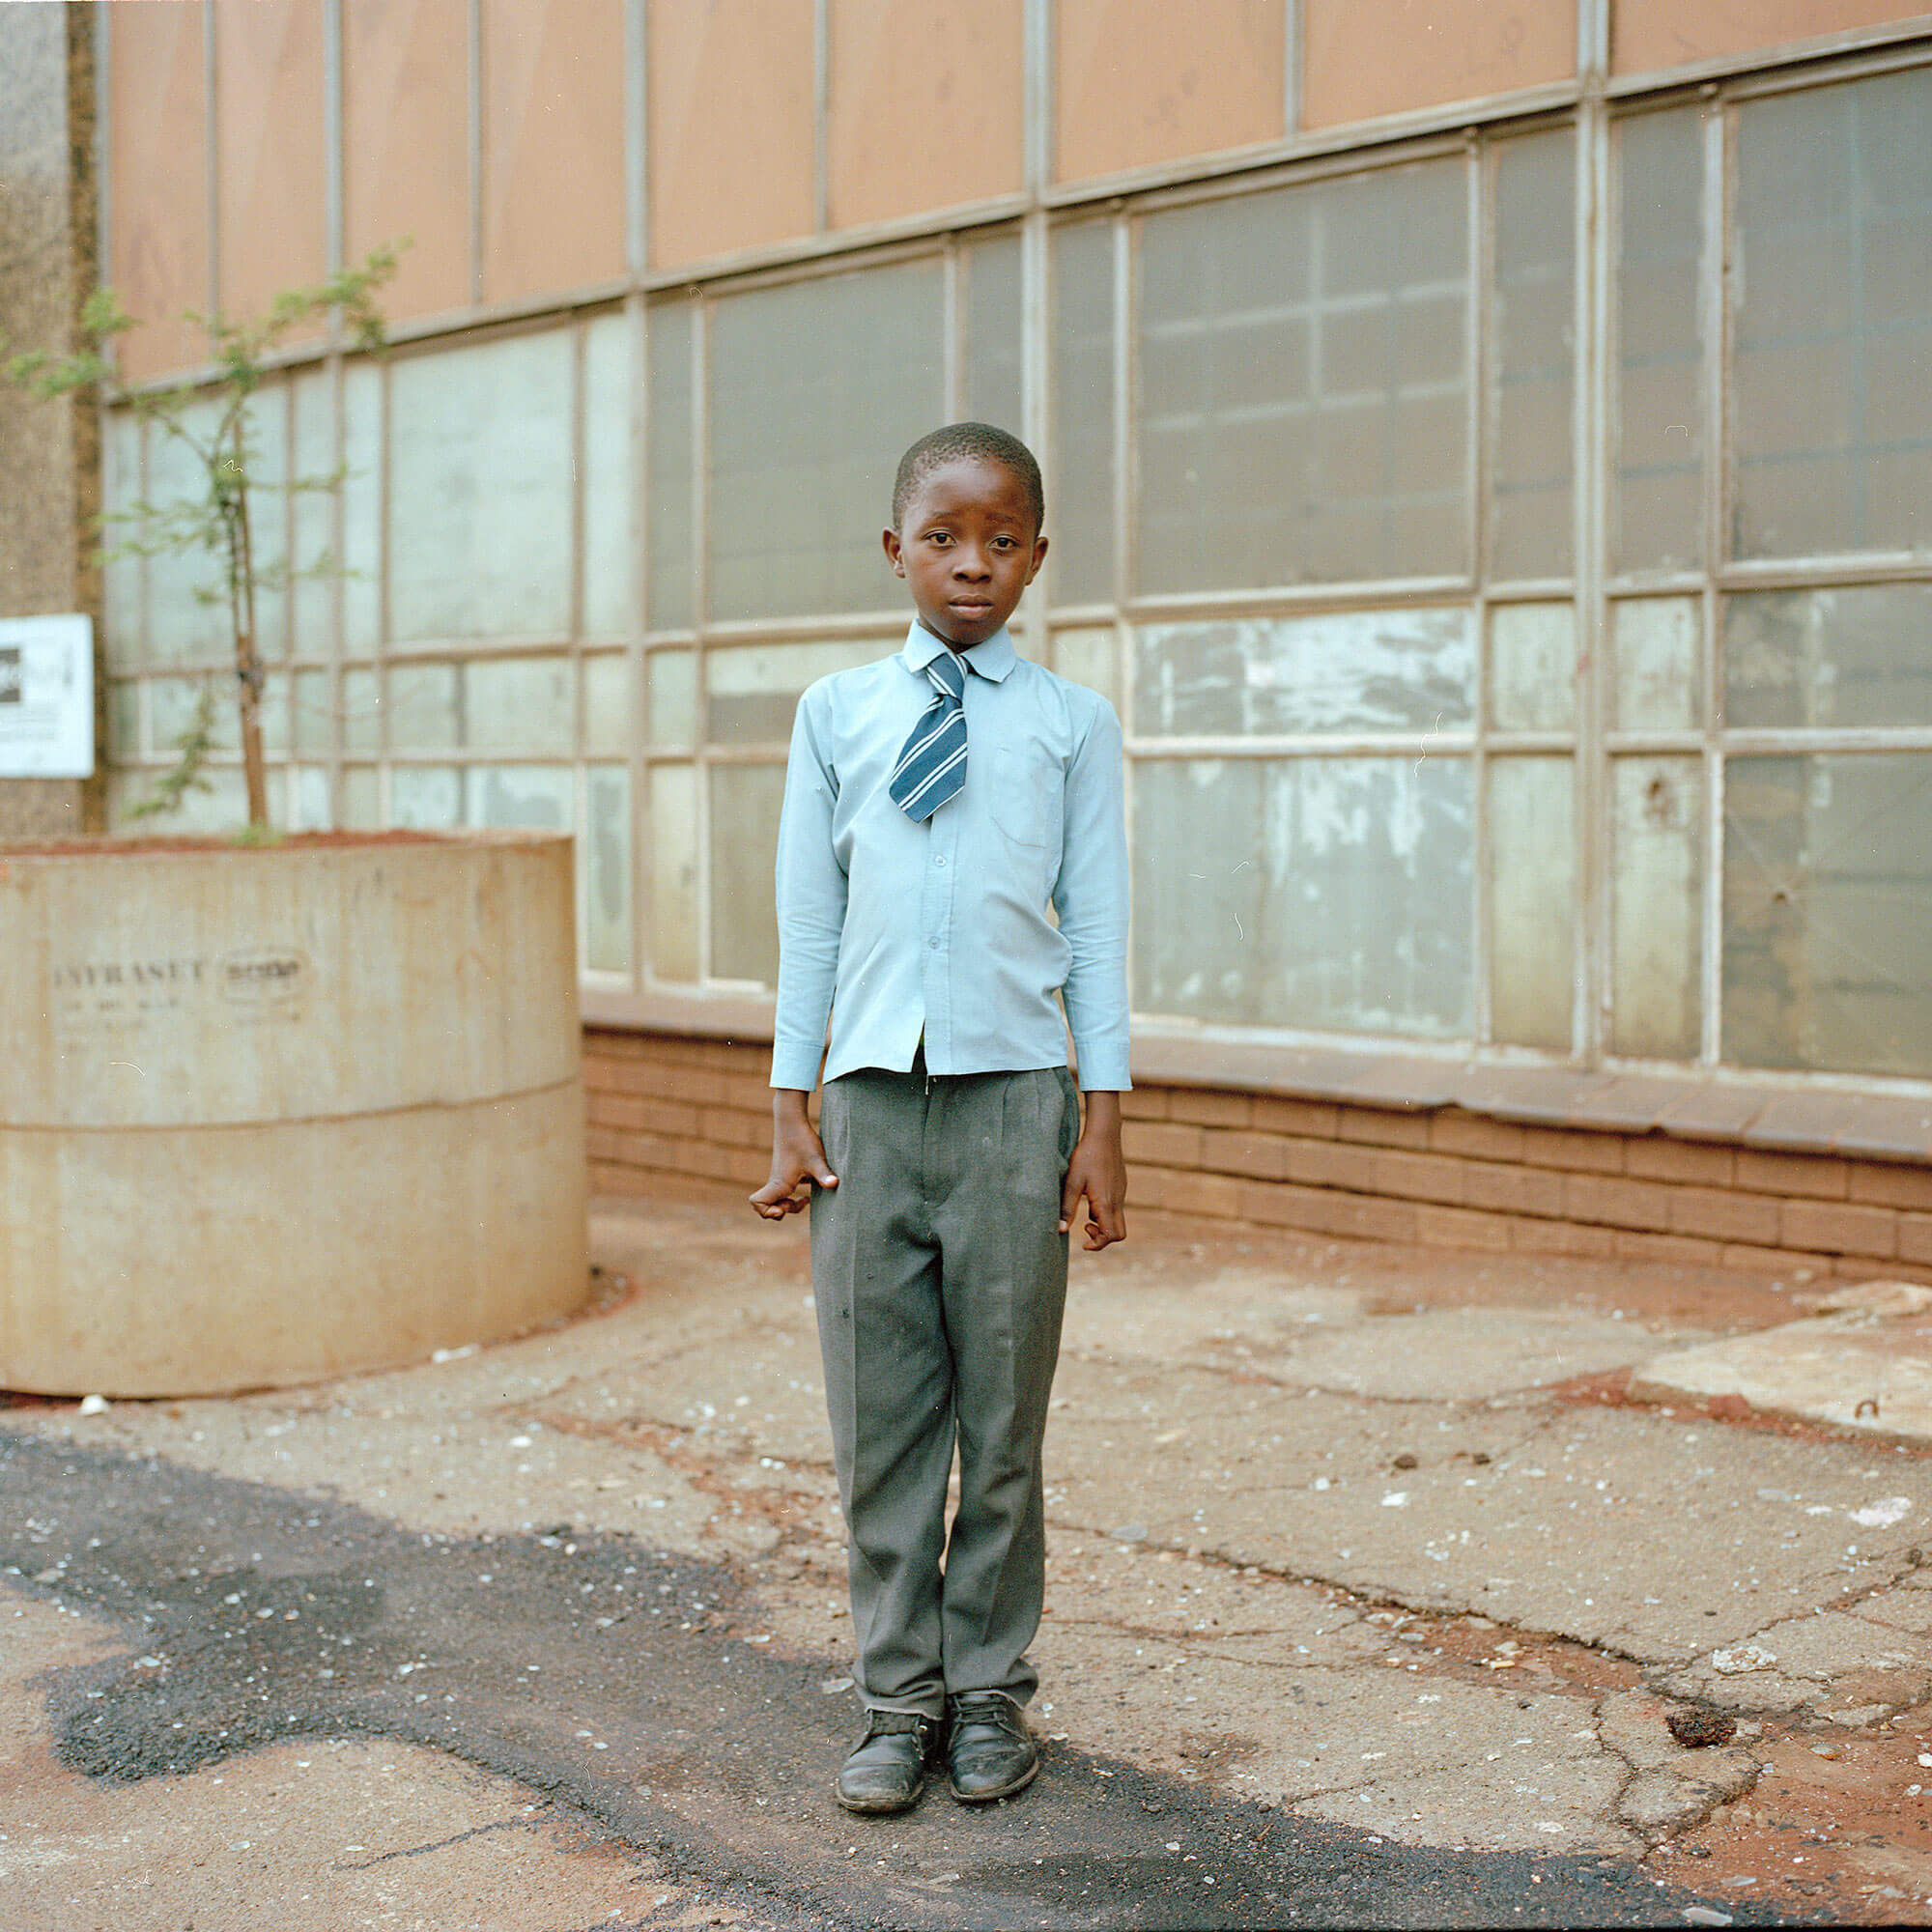 Claudio Rasano SOUTH AFRICA EVERYONE LIVE IN THE SAME PLACE LIKE BEFORE portrait of school boy